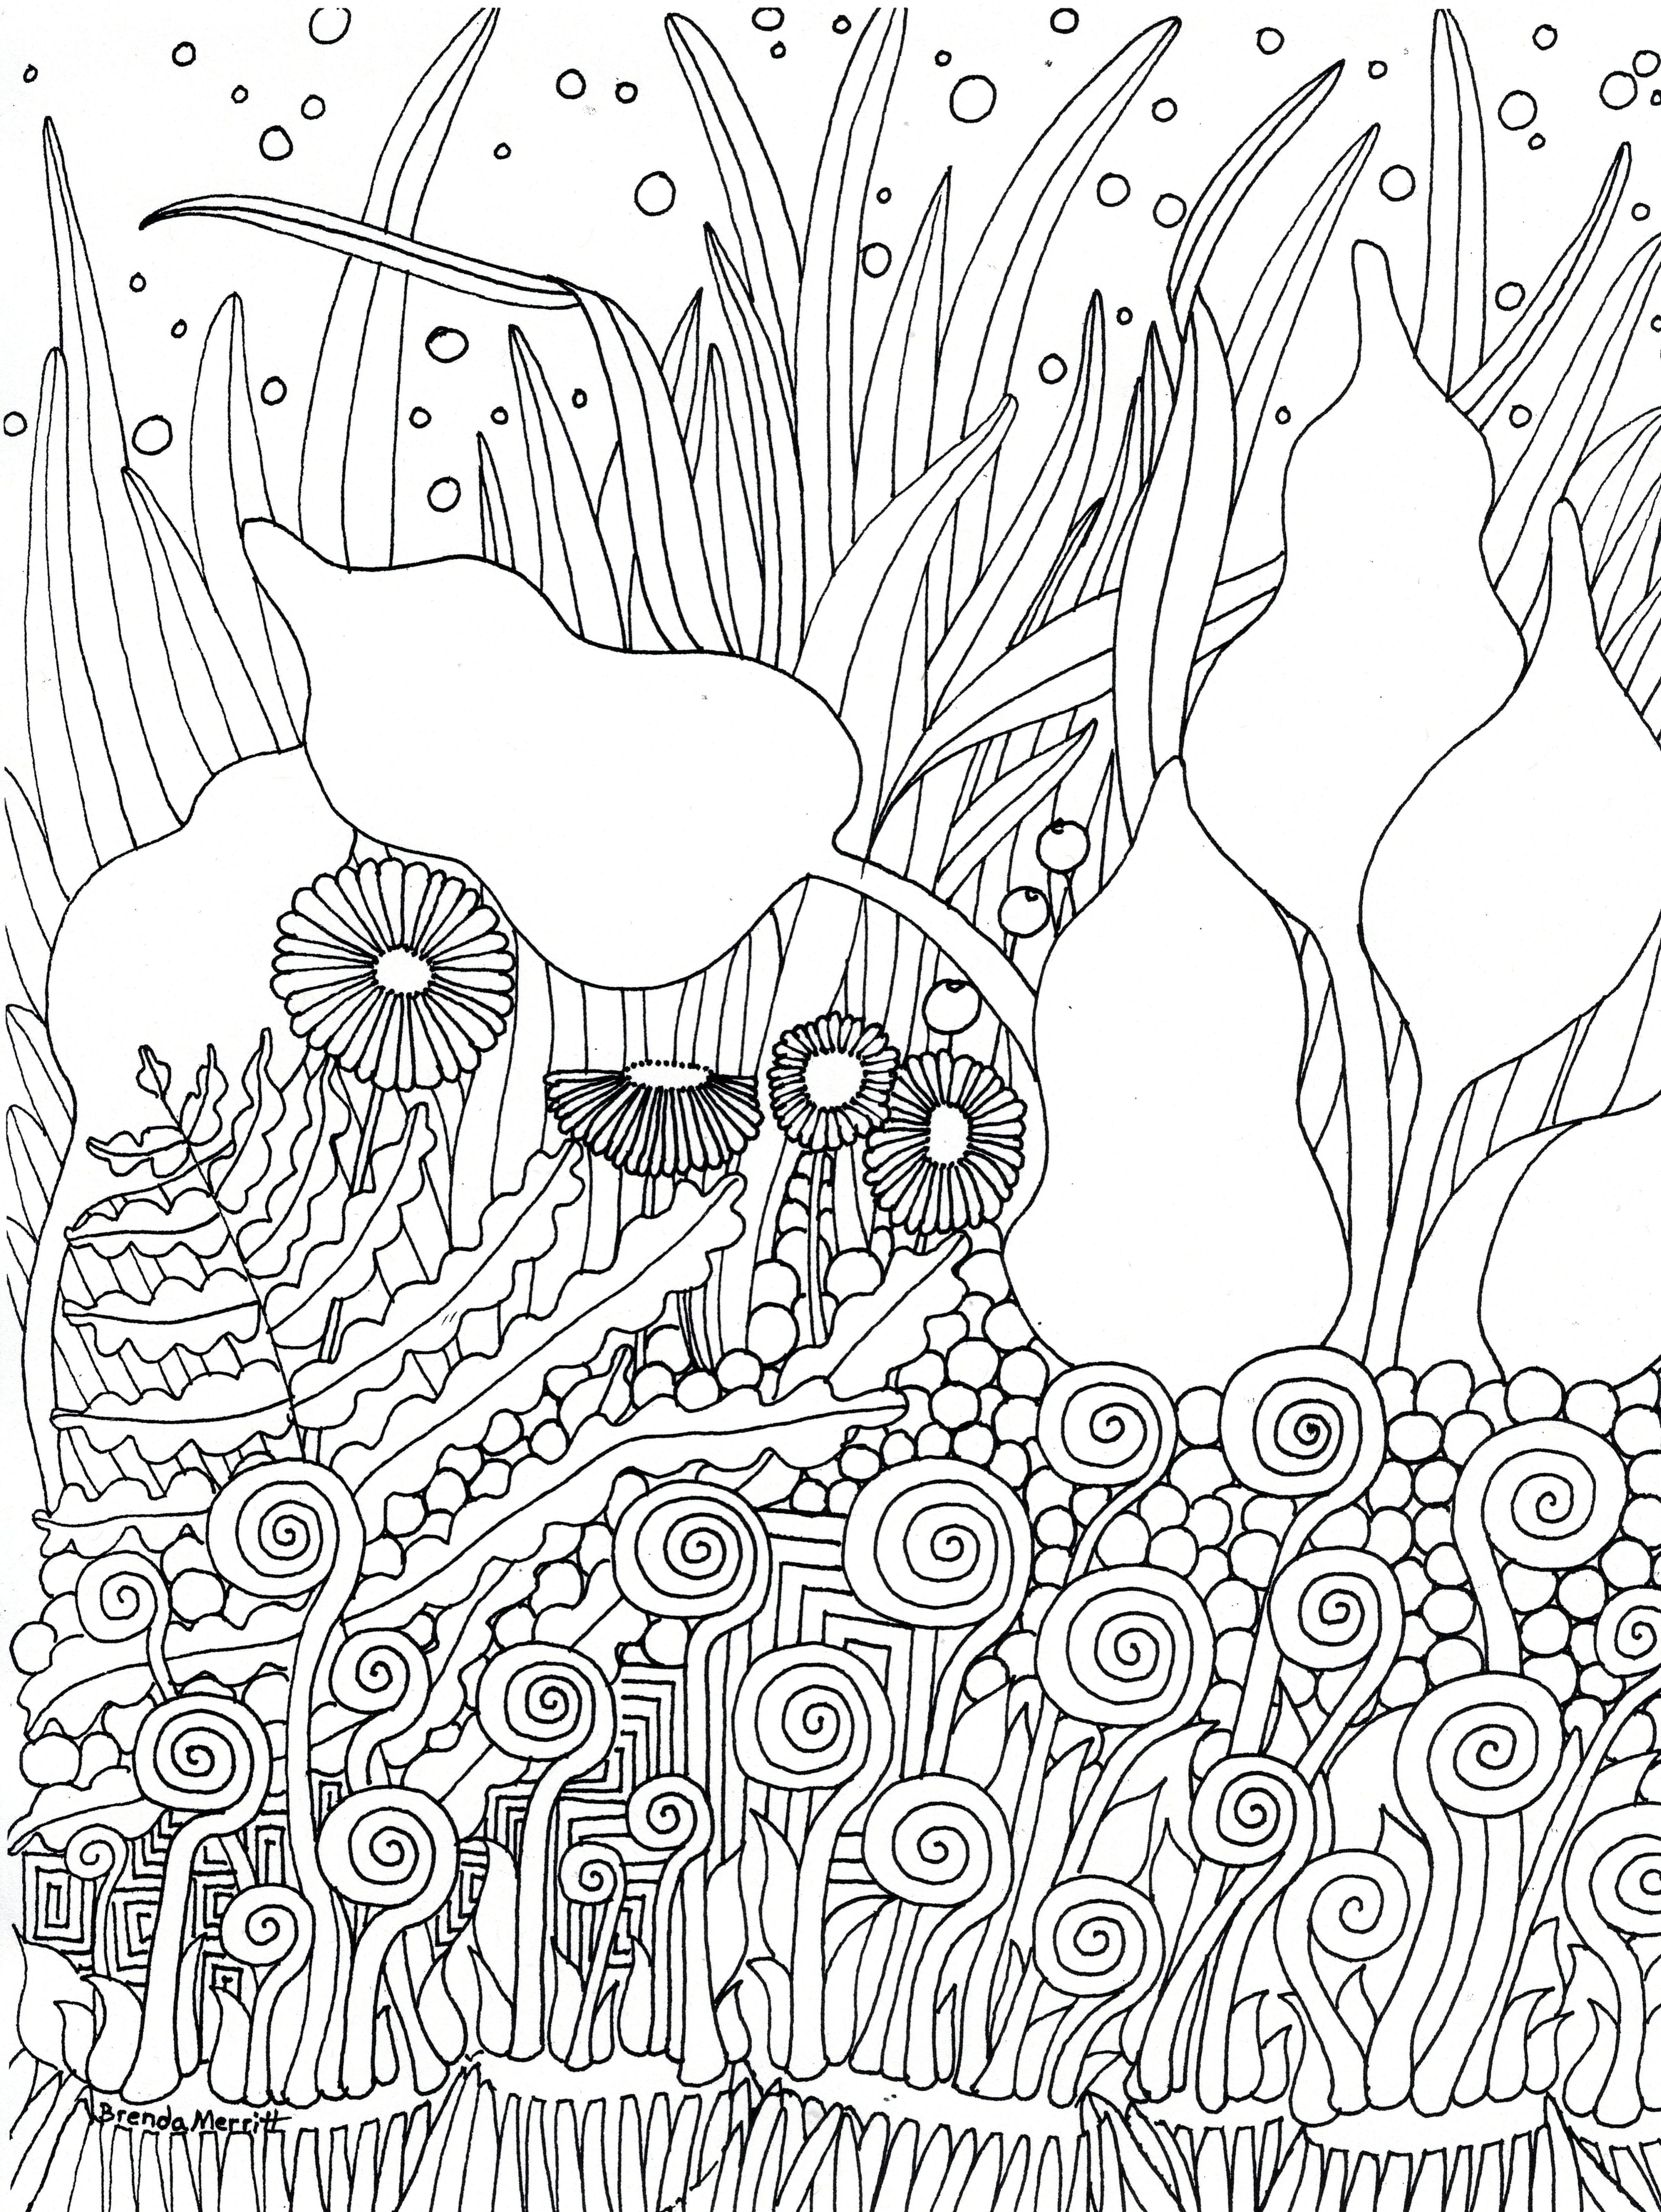 chesapeake bay coloring pages - photo#8